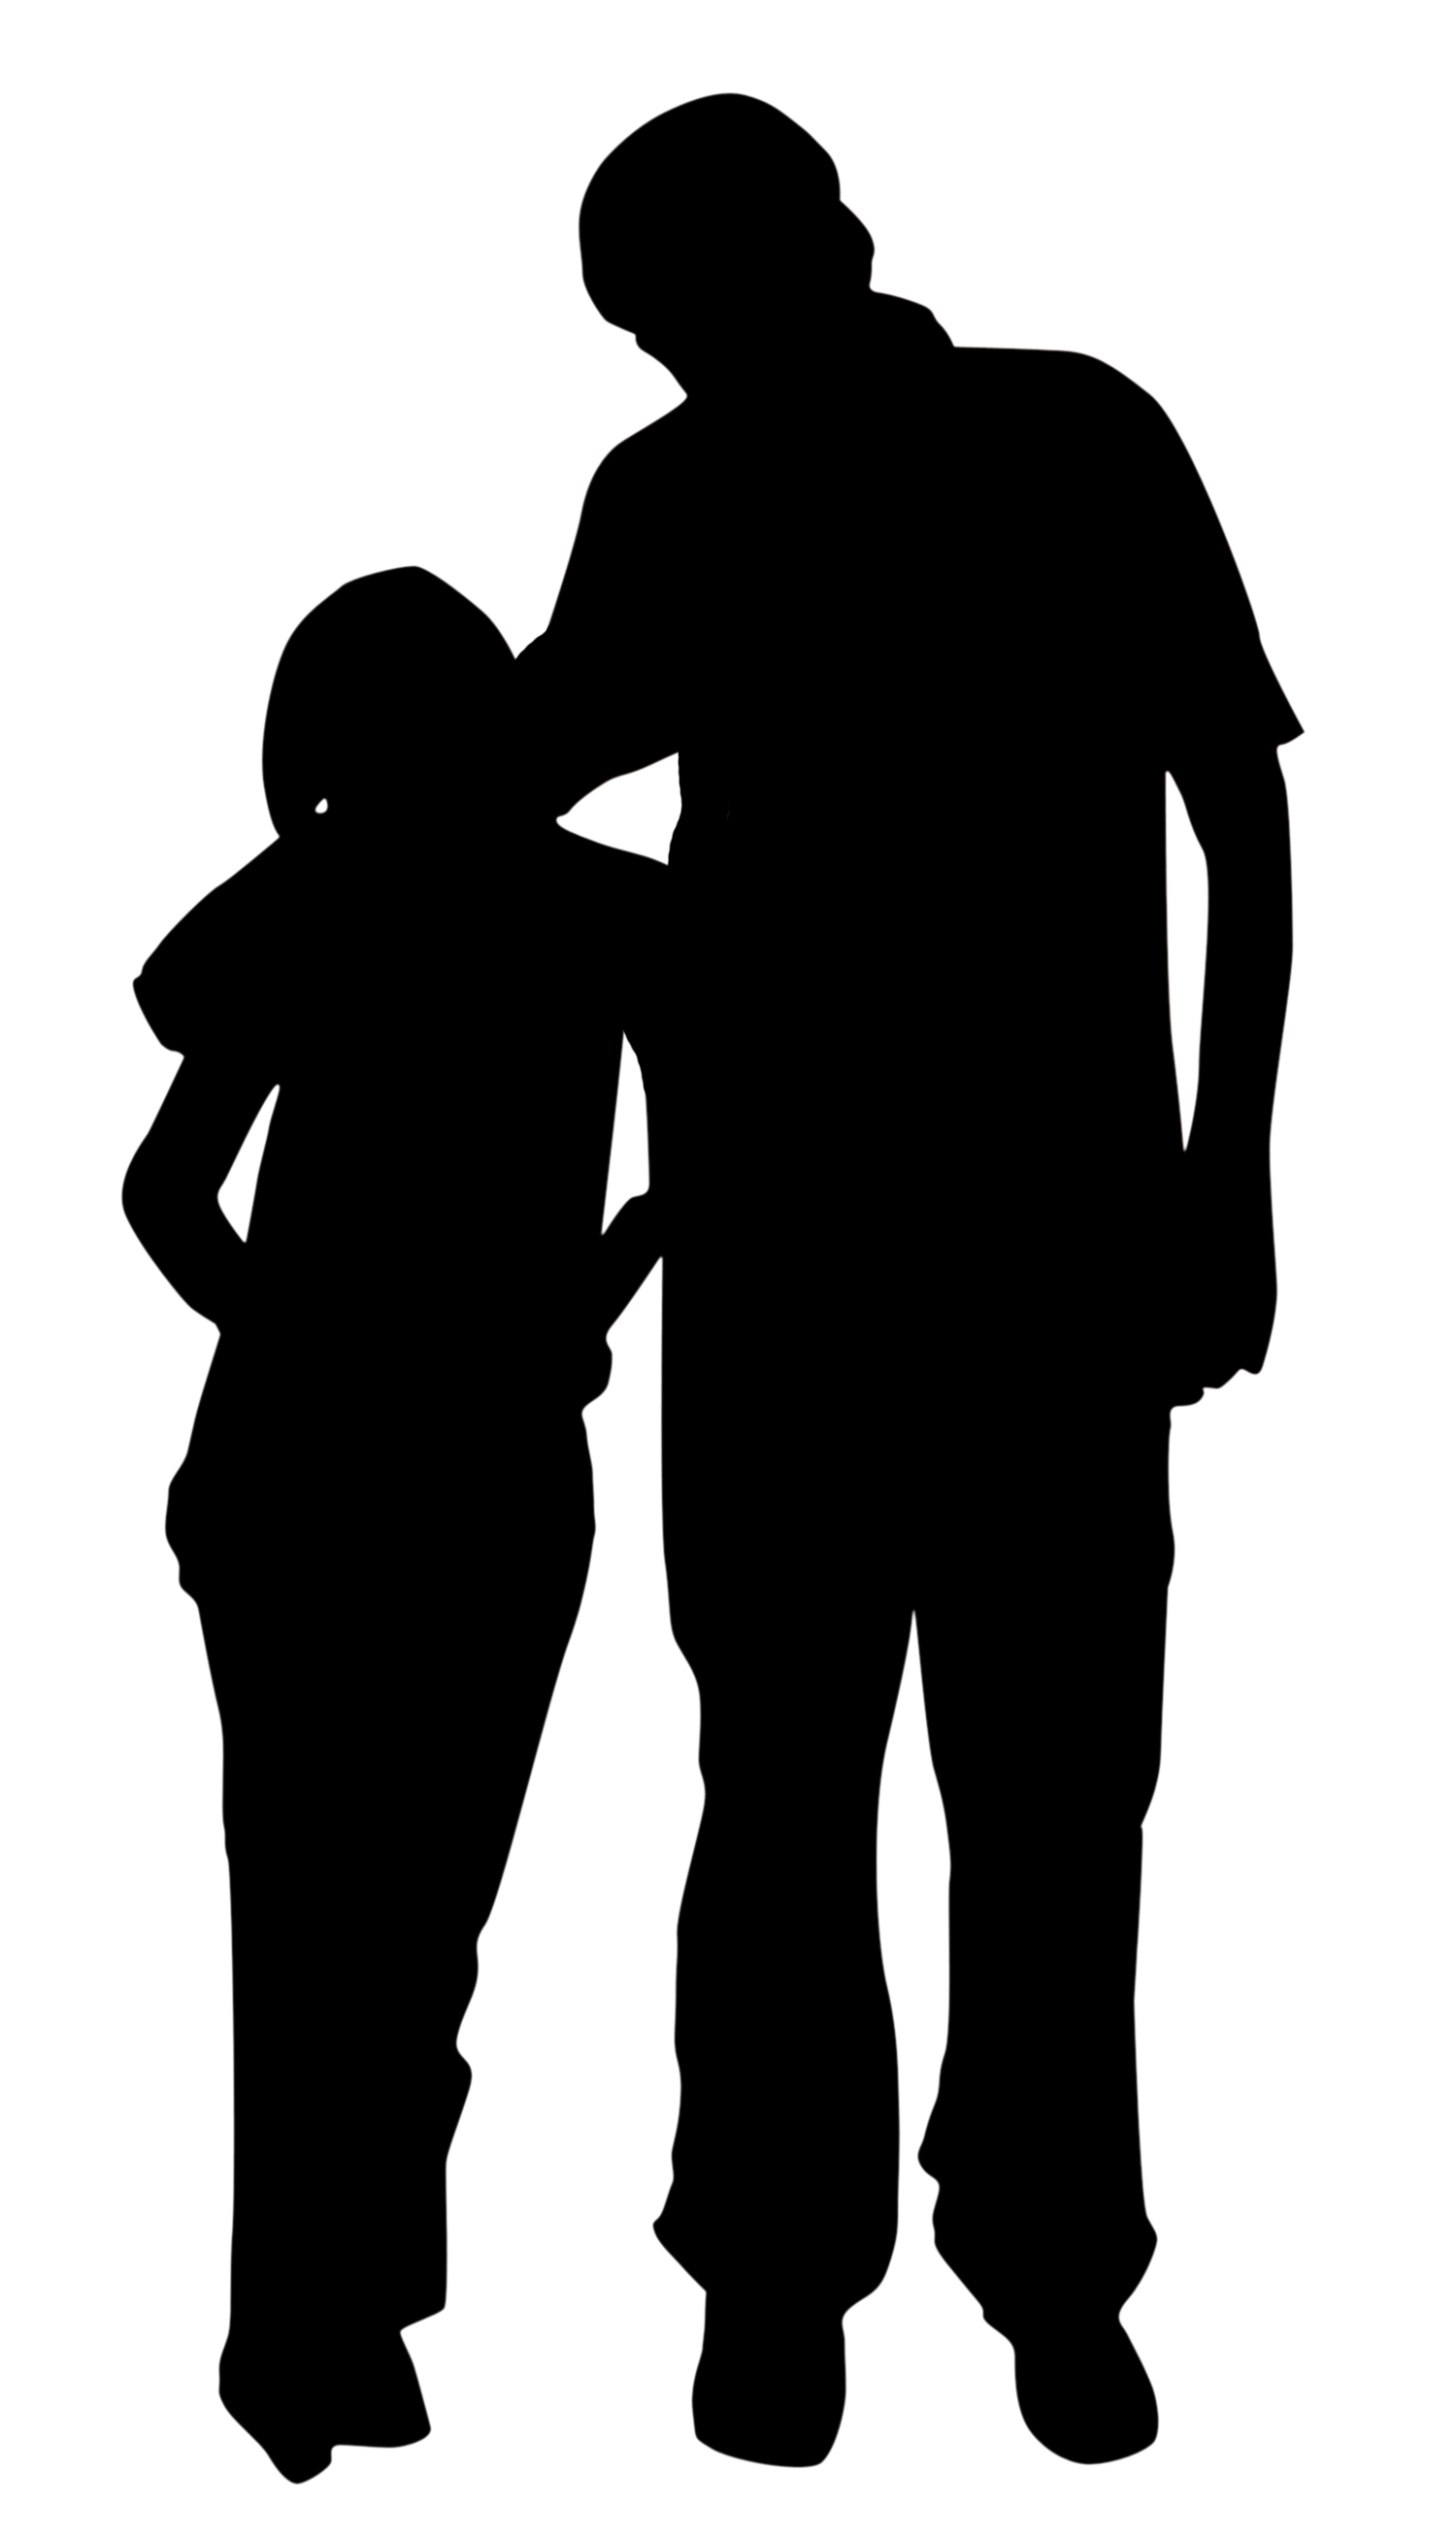 father silhouette dad and daughter png transparent dad and daughterpng father silhouette